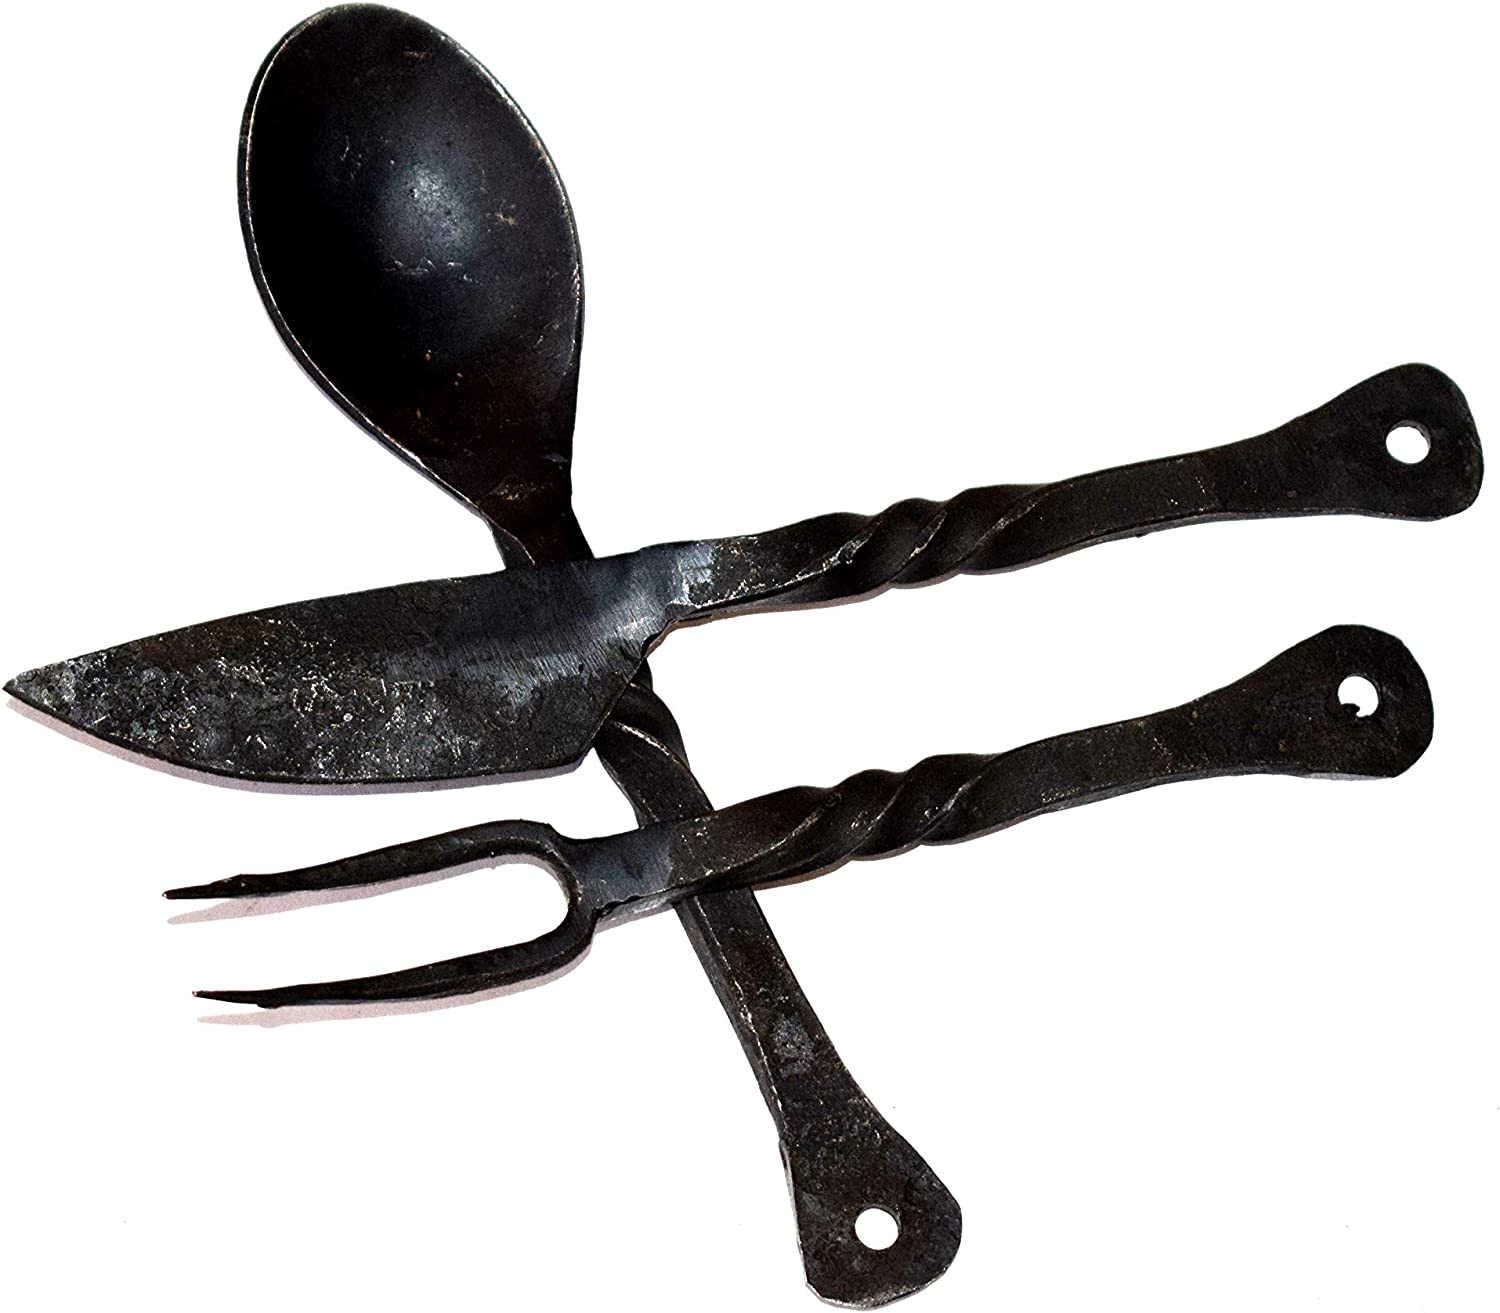 OLD MEMORIES GALLERY Medieval Eating Utensil Set (Knives, Cutlery, Iron Spoon) Nautical Decor